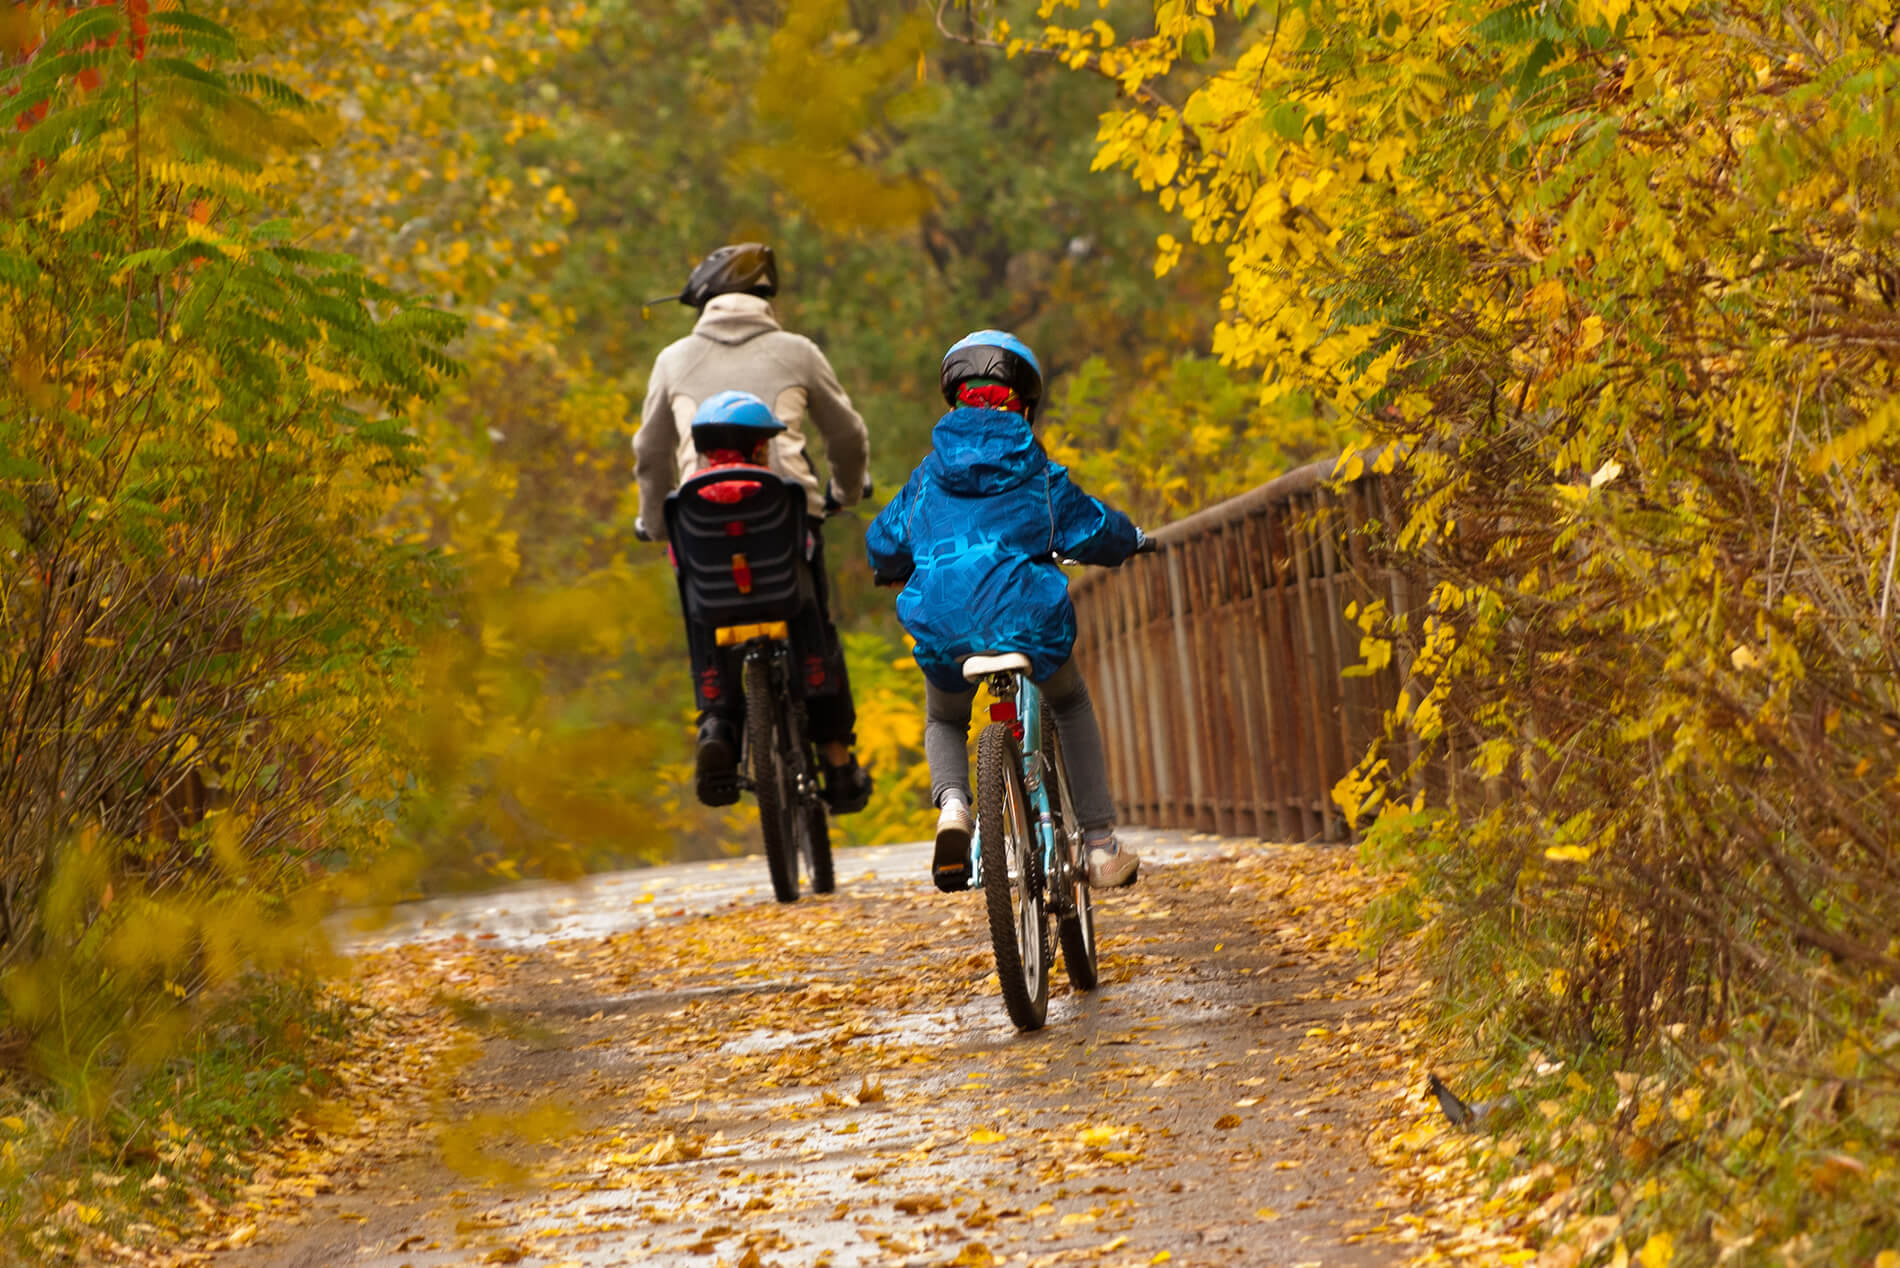 dad and children on bikes, cycling outdoors, yellow and gold autumn fall colors.